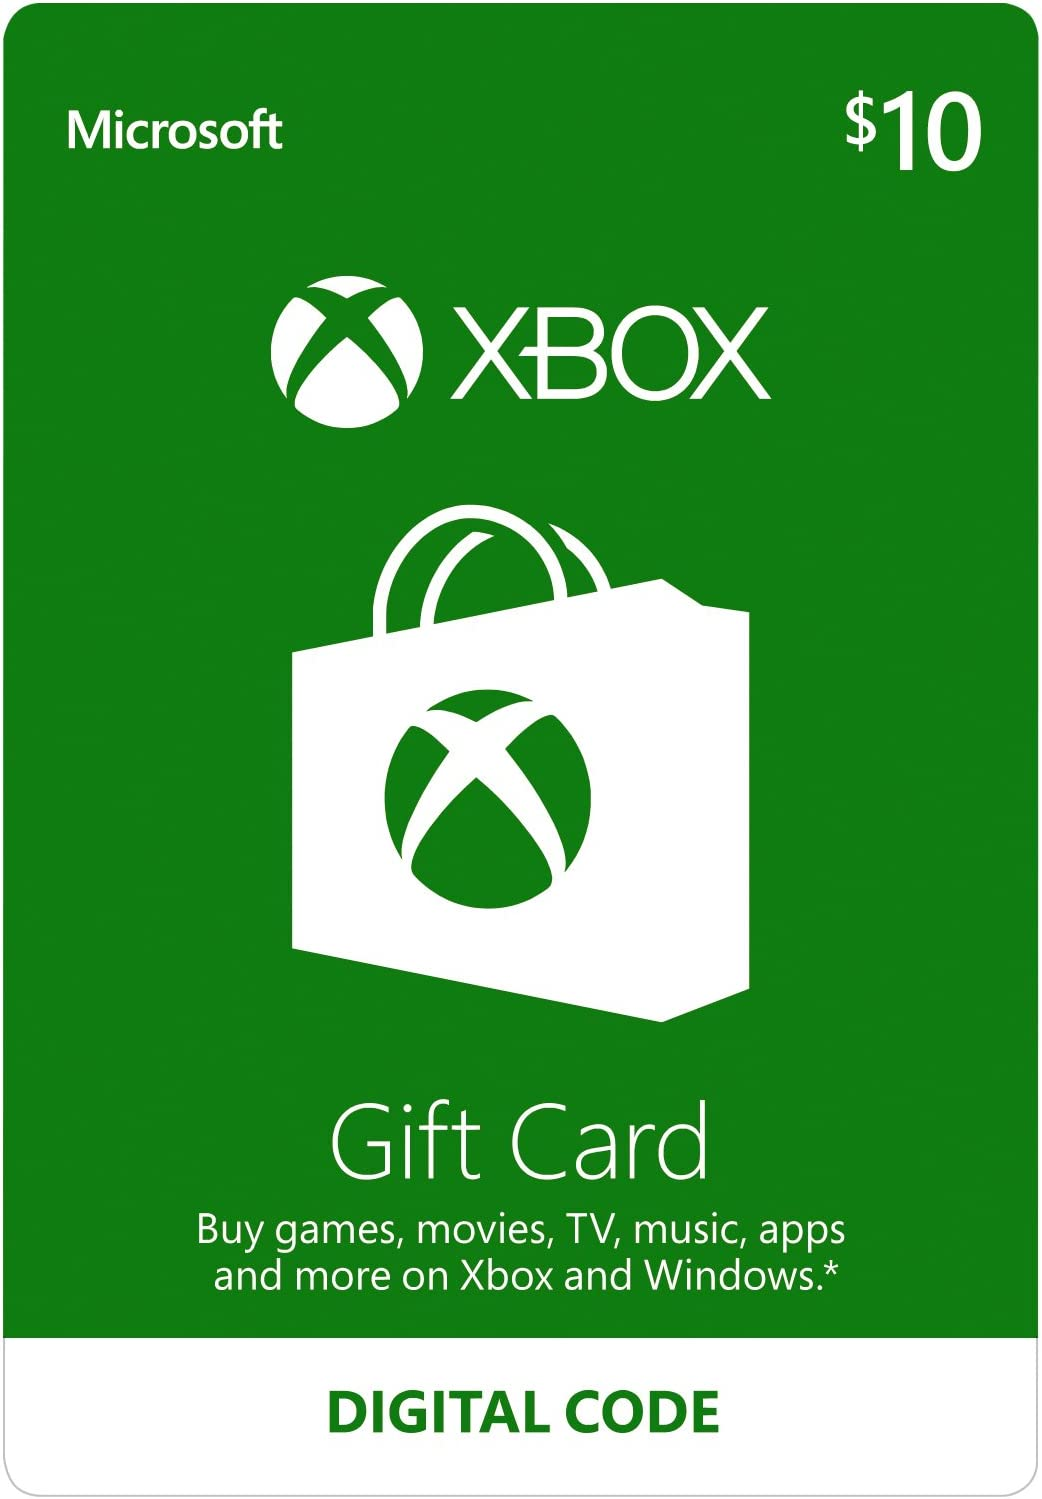 Amazon.com: $10 Xbox Gift Card - [Digital Code]: Video Games